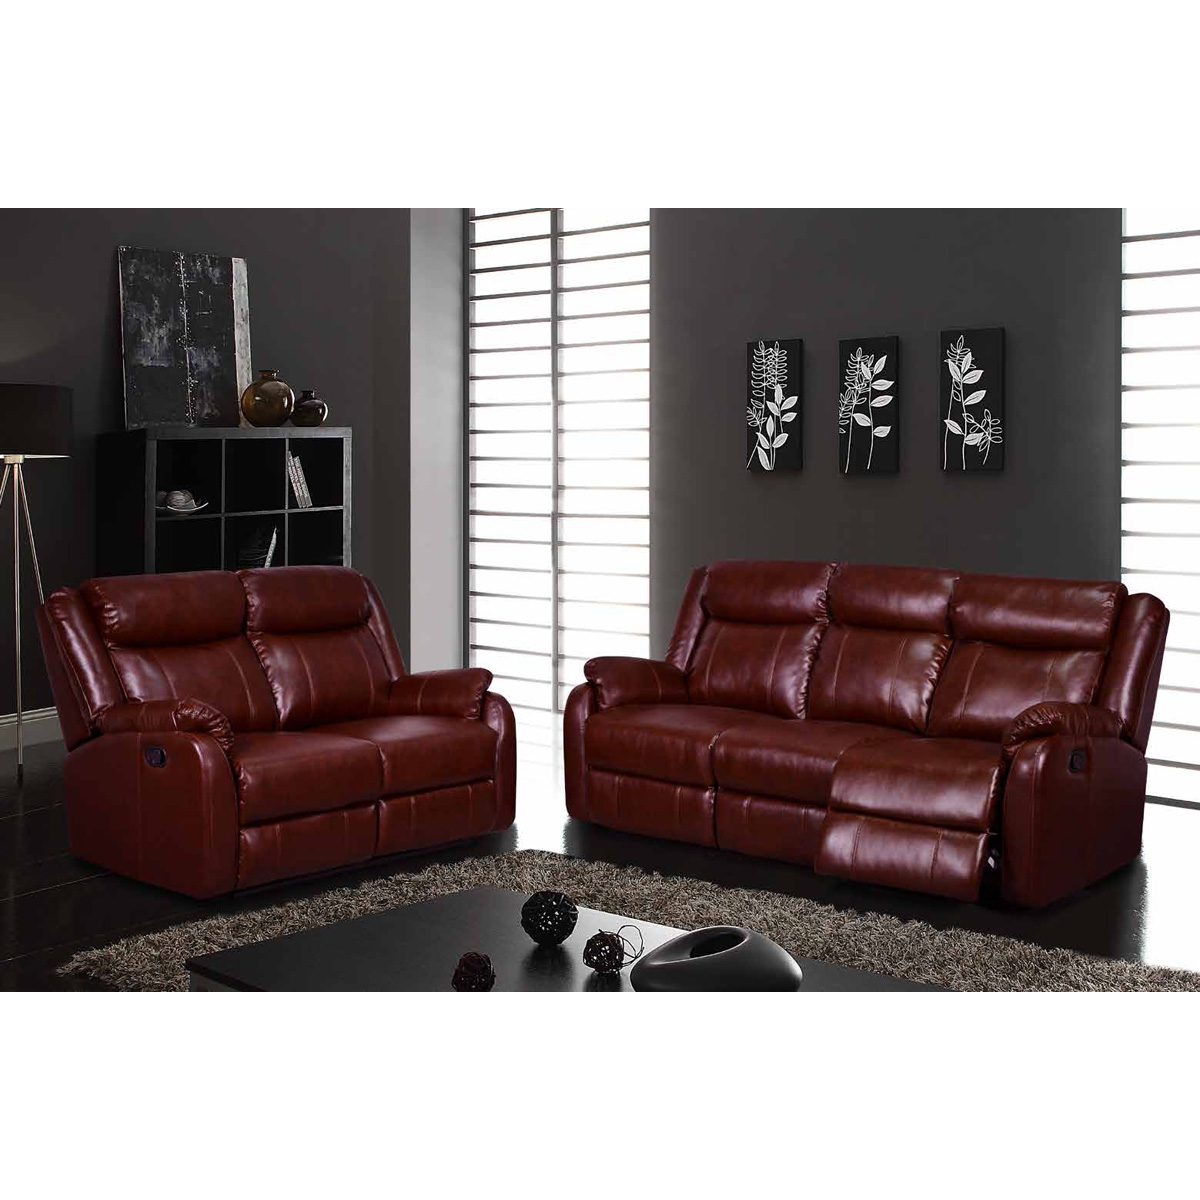 Nolan Reclining Sofa Set In Burgundy Leatherette Dcg Stores